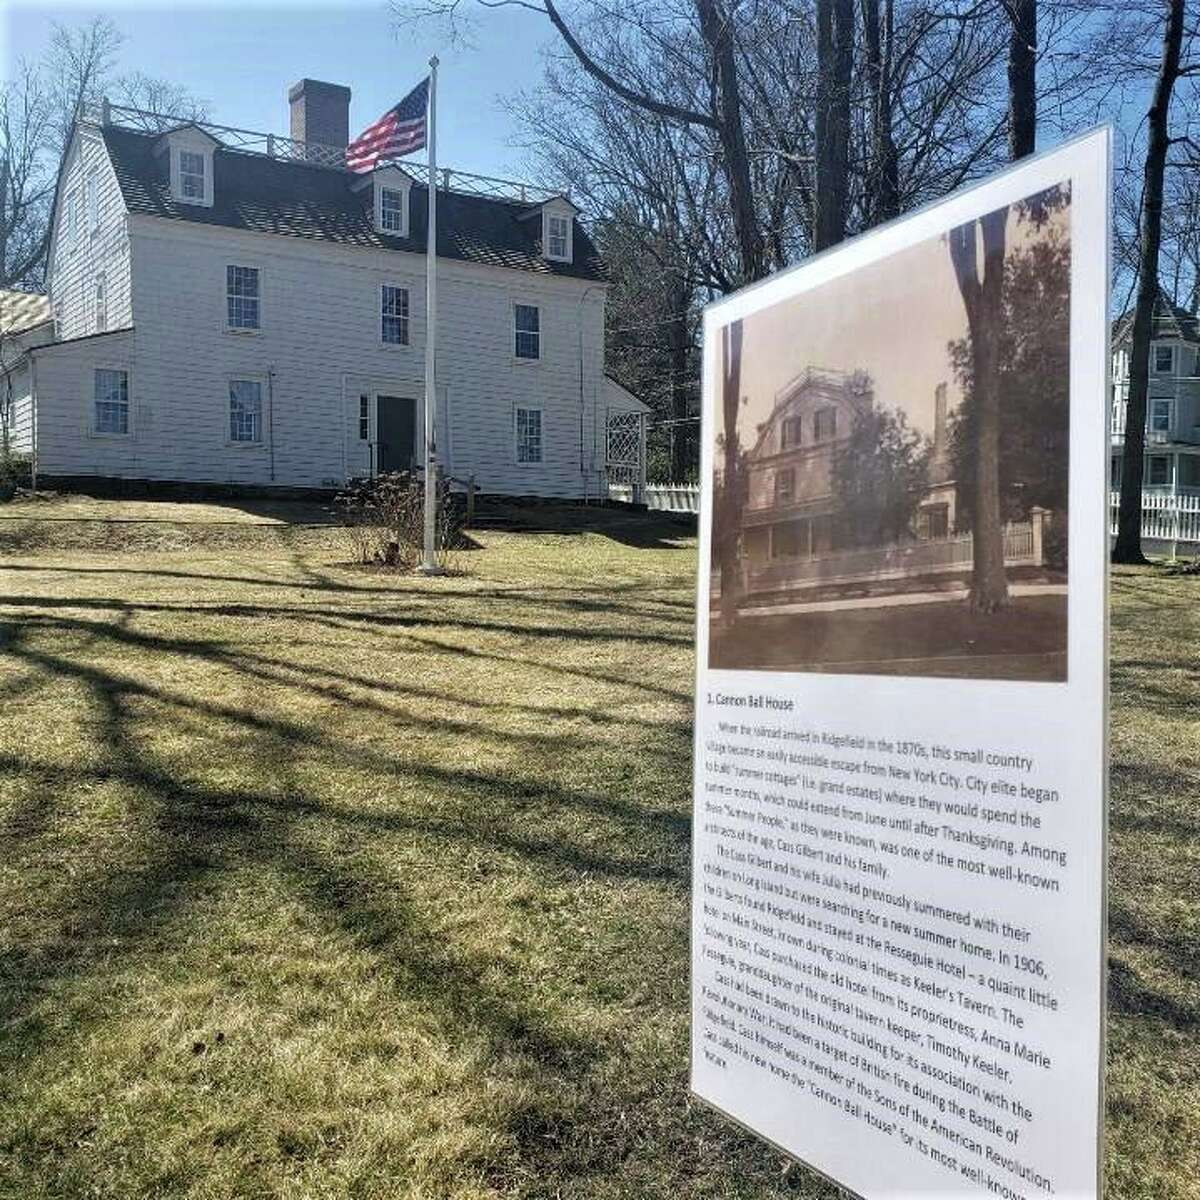 Here is information about what is happening in Ridgefield including a self-guided walking tour at the Keeler Tavern Museum and History Center.